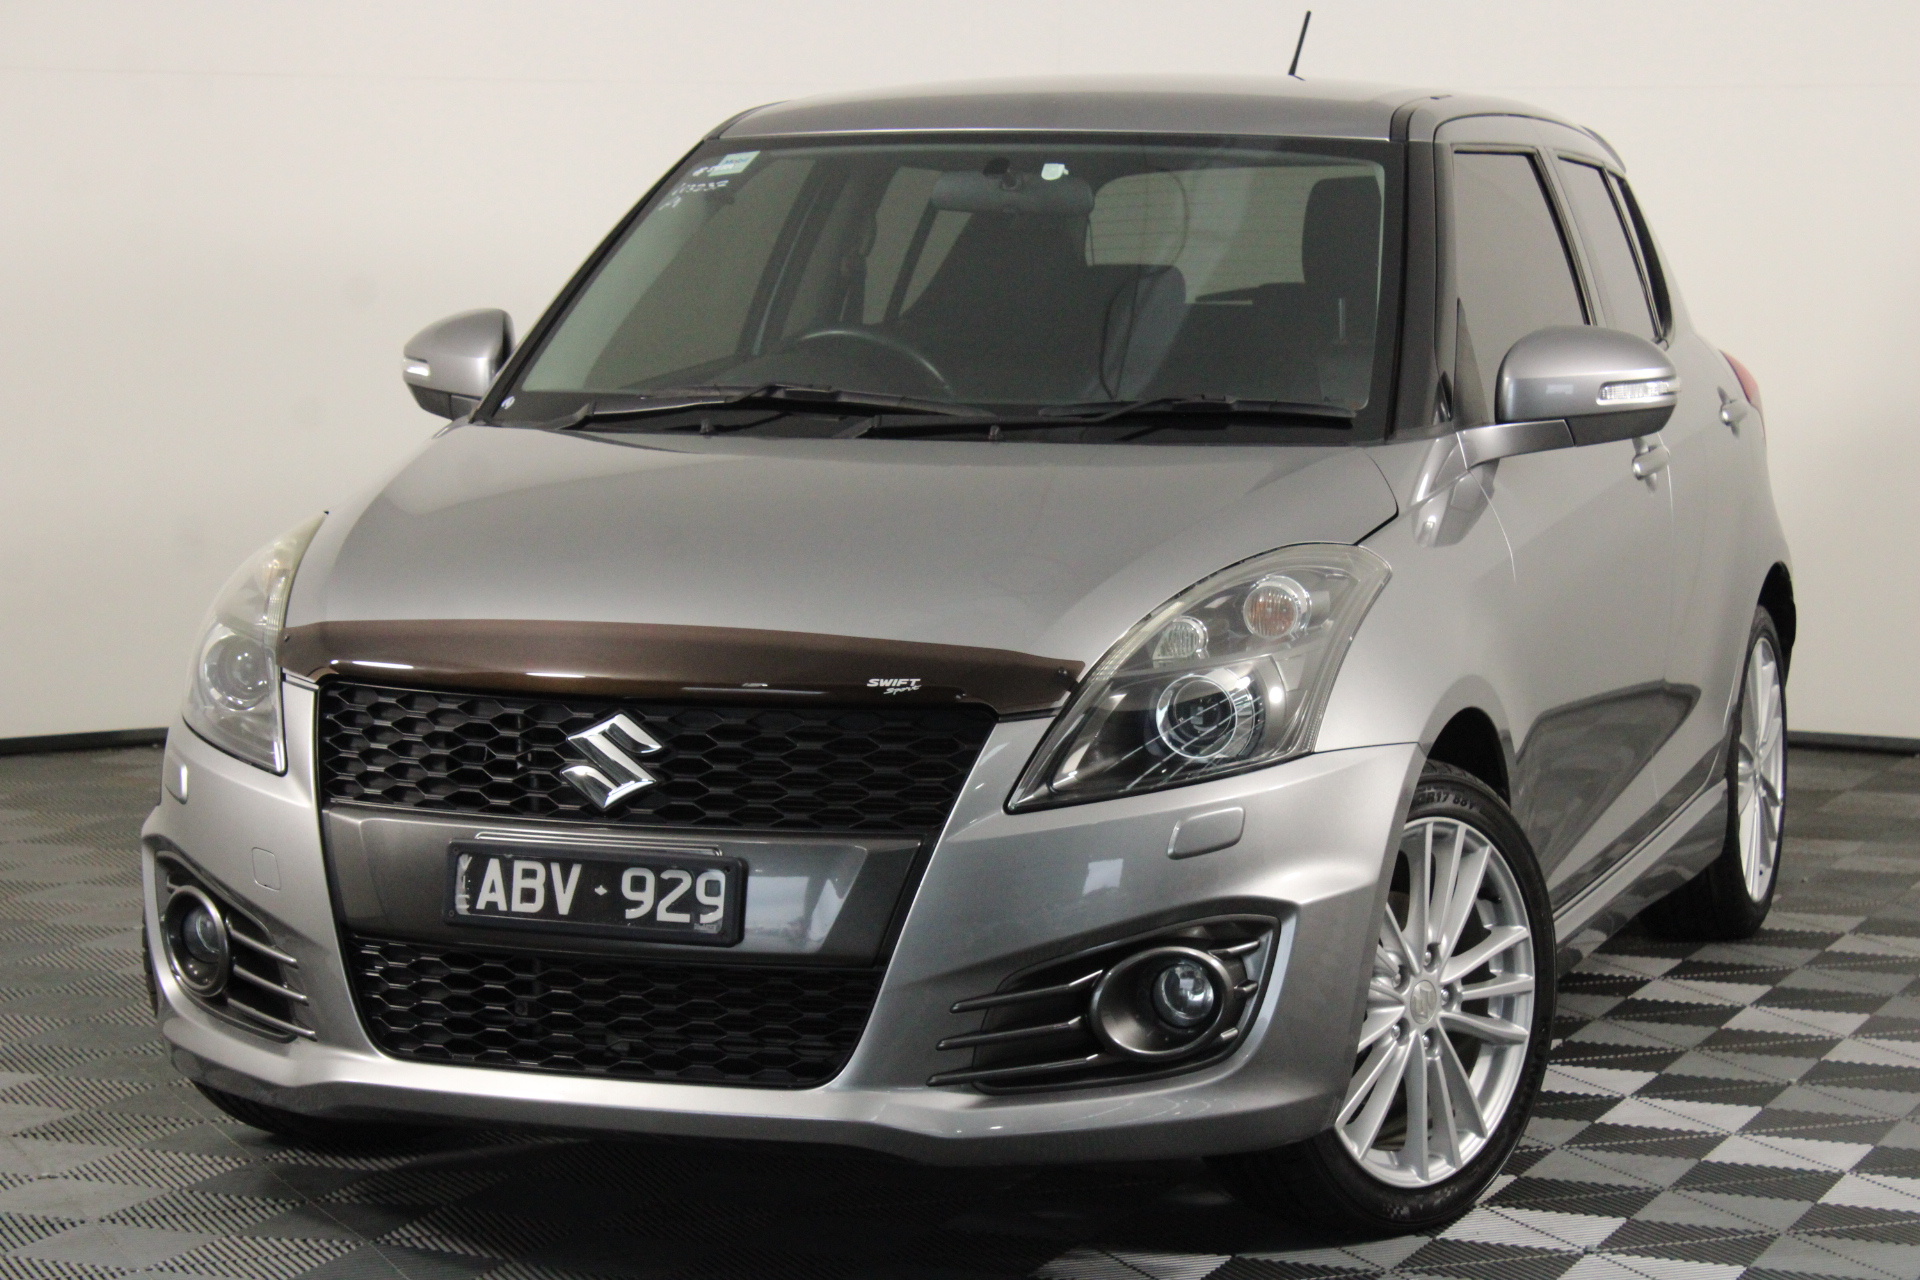 2015 Suzuki Swift Sport FZ Manual Hatchback